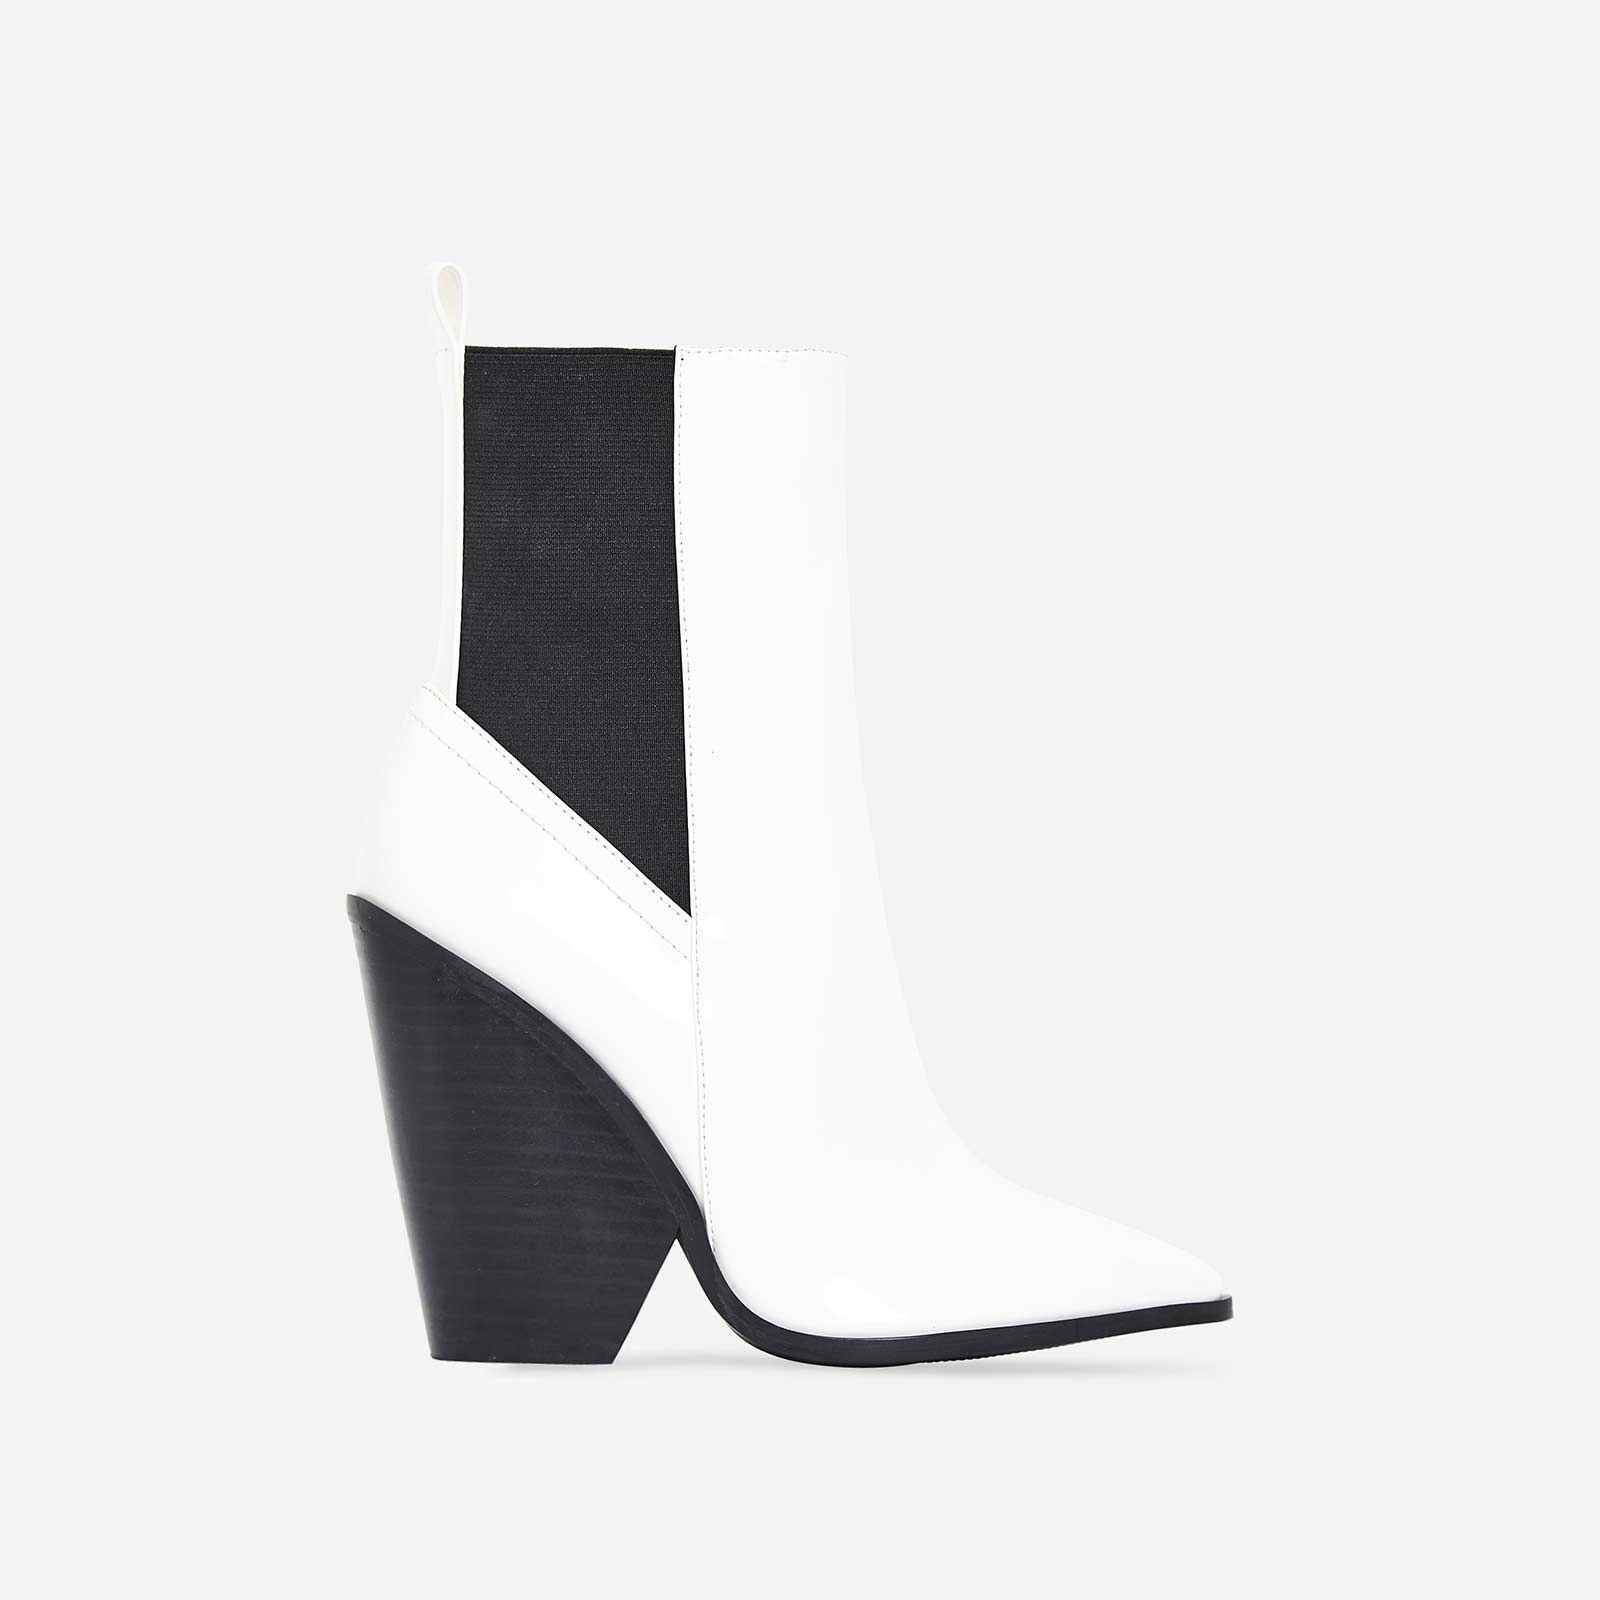 Bella Black Heel Ankle Boot In White Patent